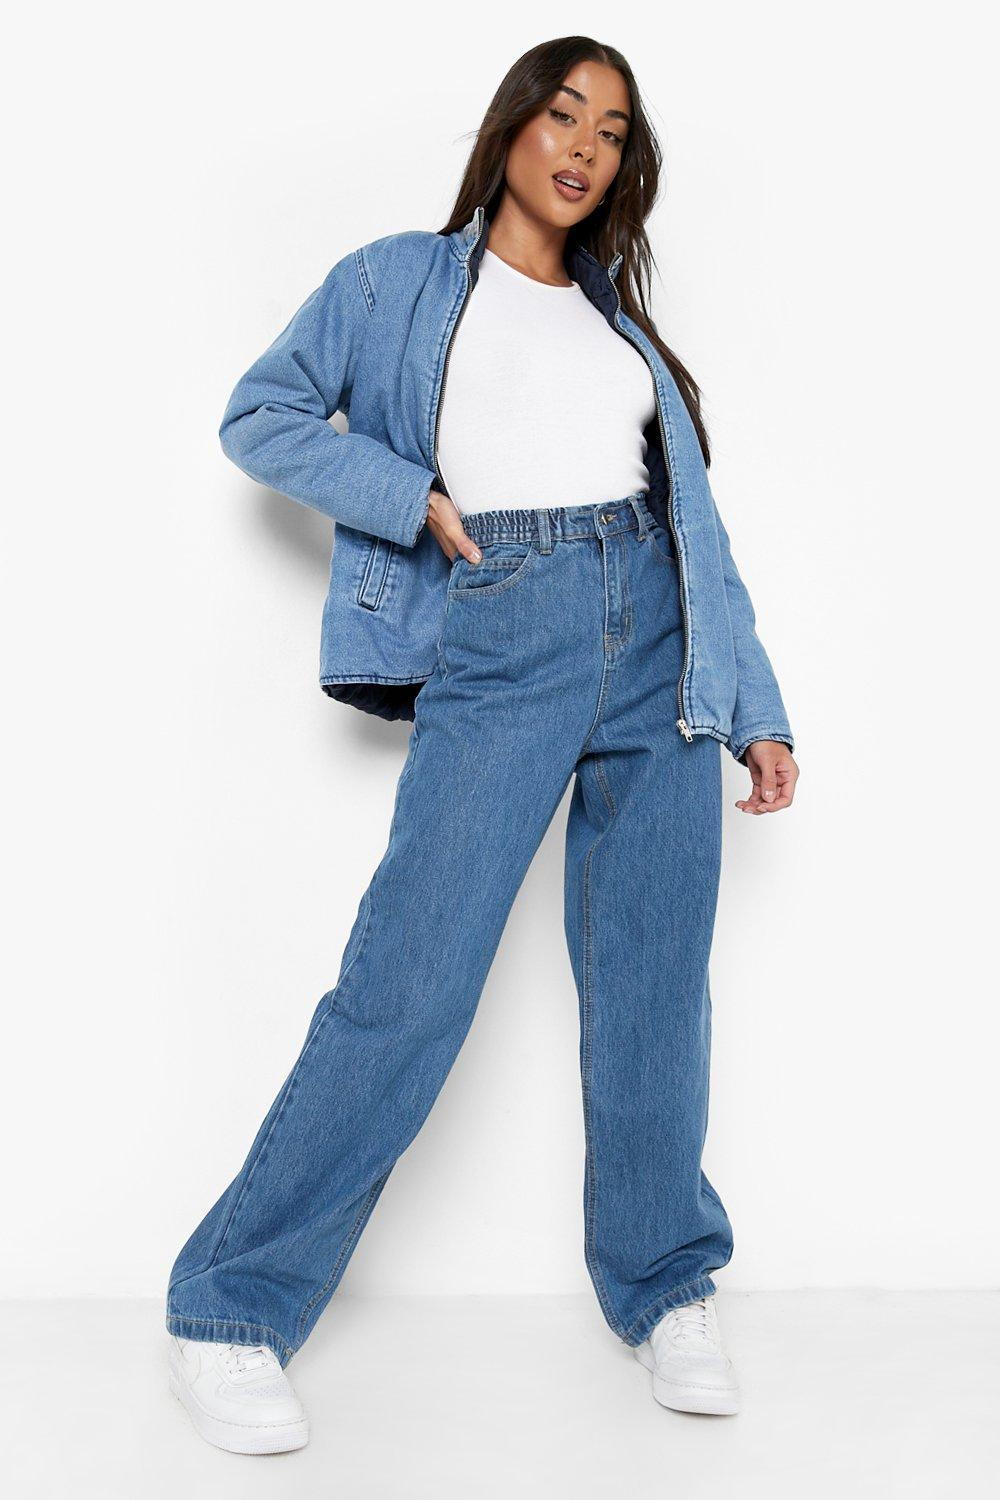 1980s Clothing, Fashion | 80s Style Clothes Womens High Rise 90S Fit Dad Jeans - Blue - 12 $20.00 AT vintagedancer.com